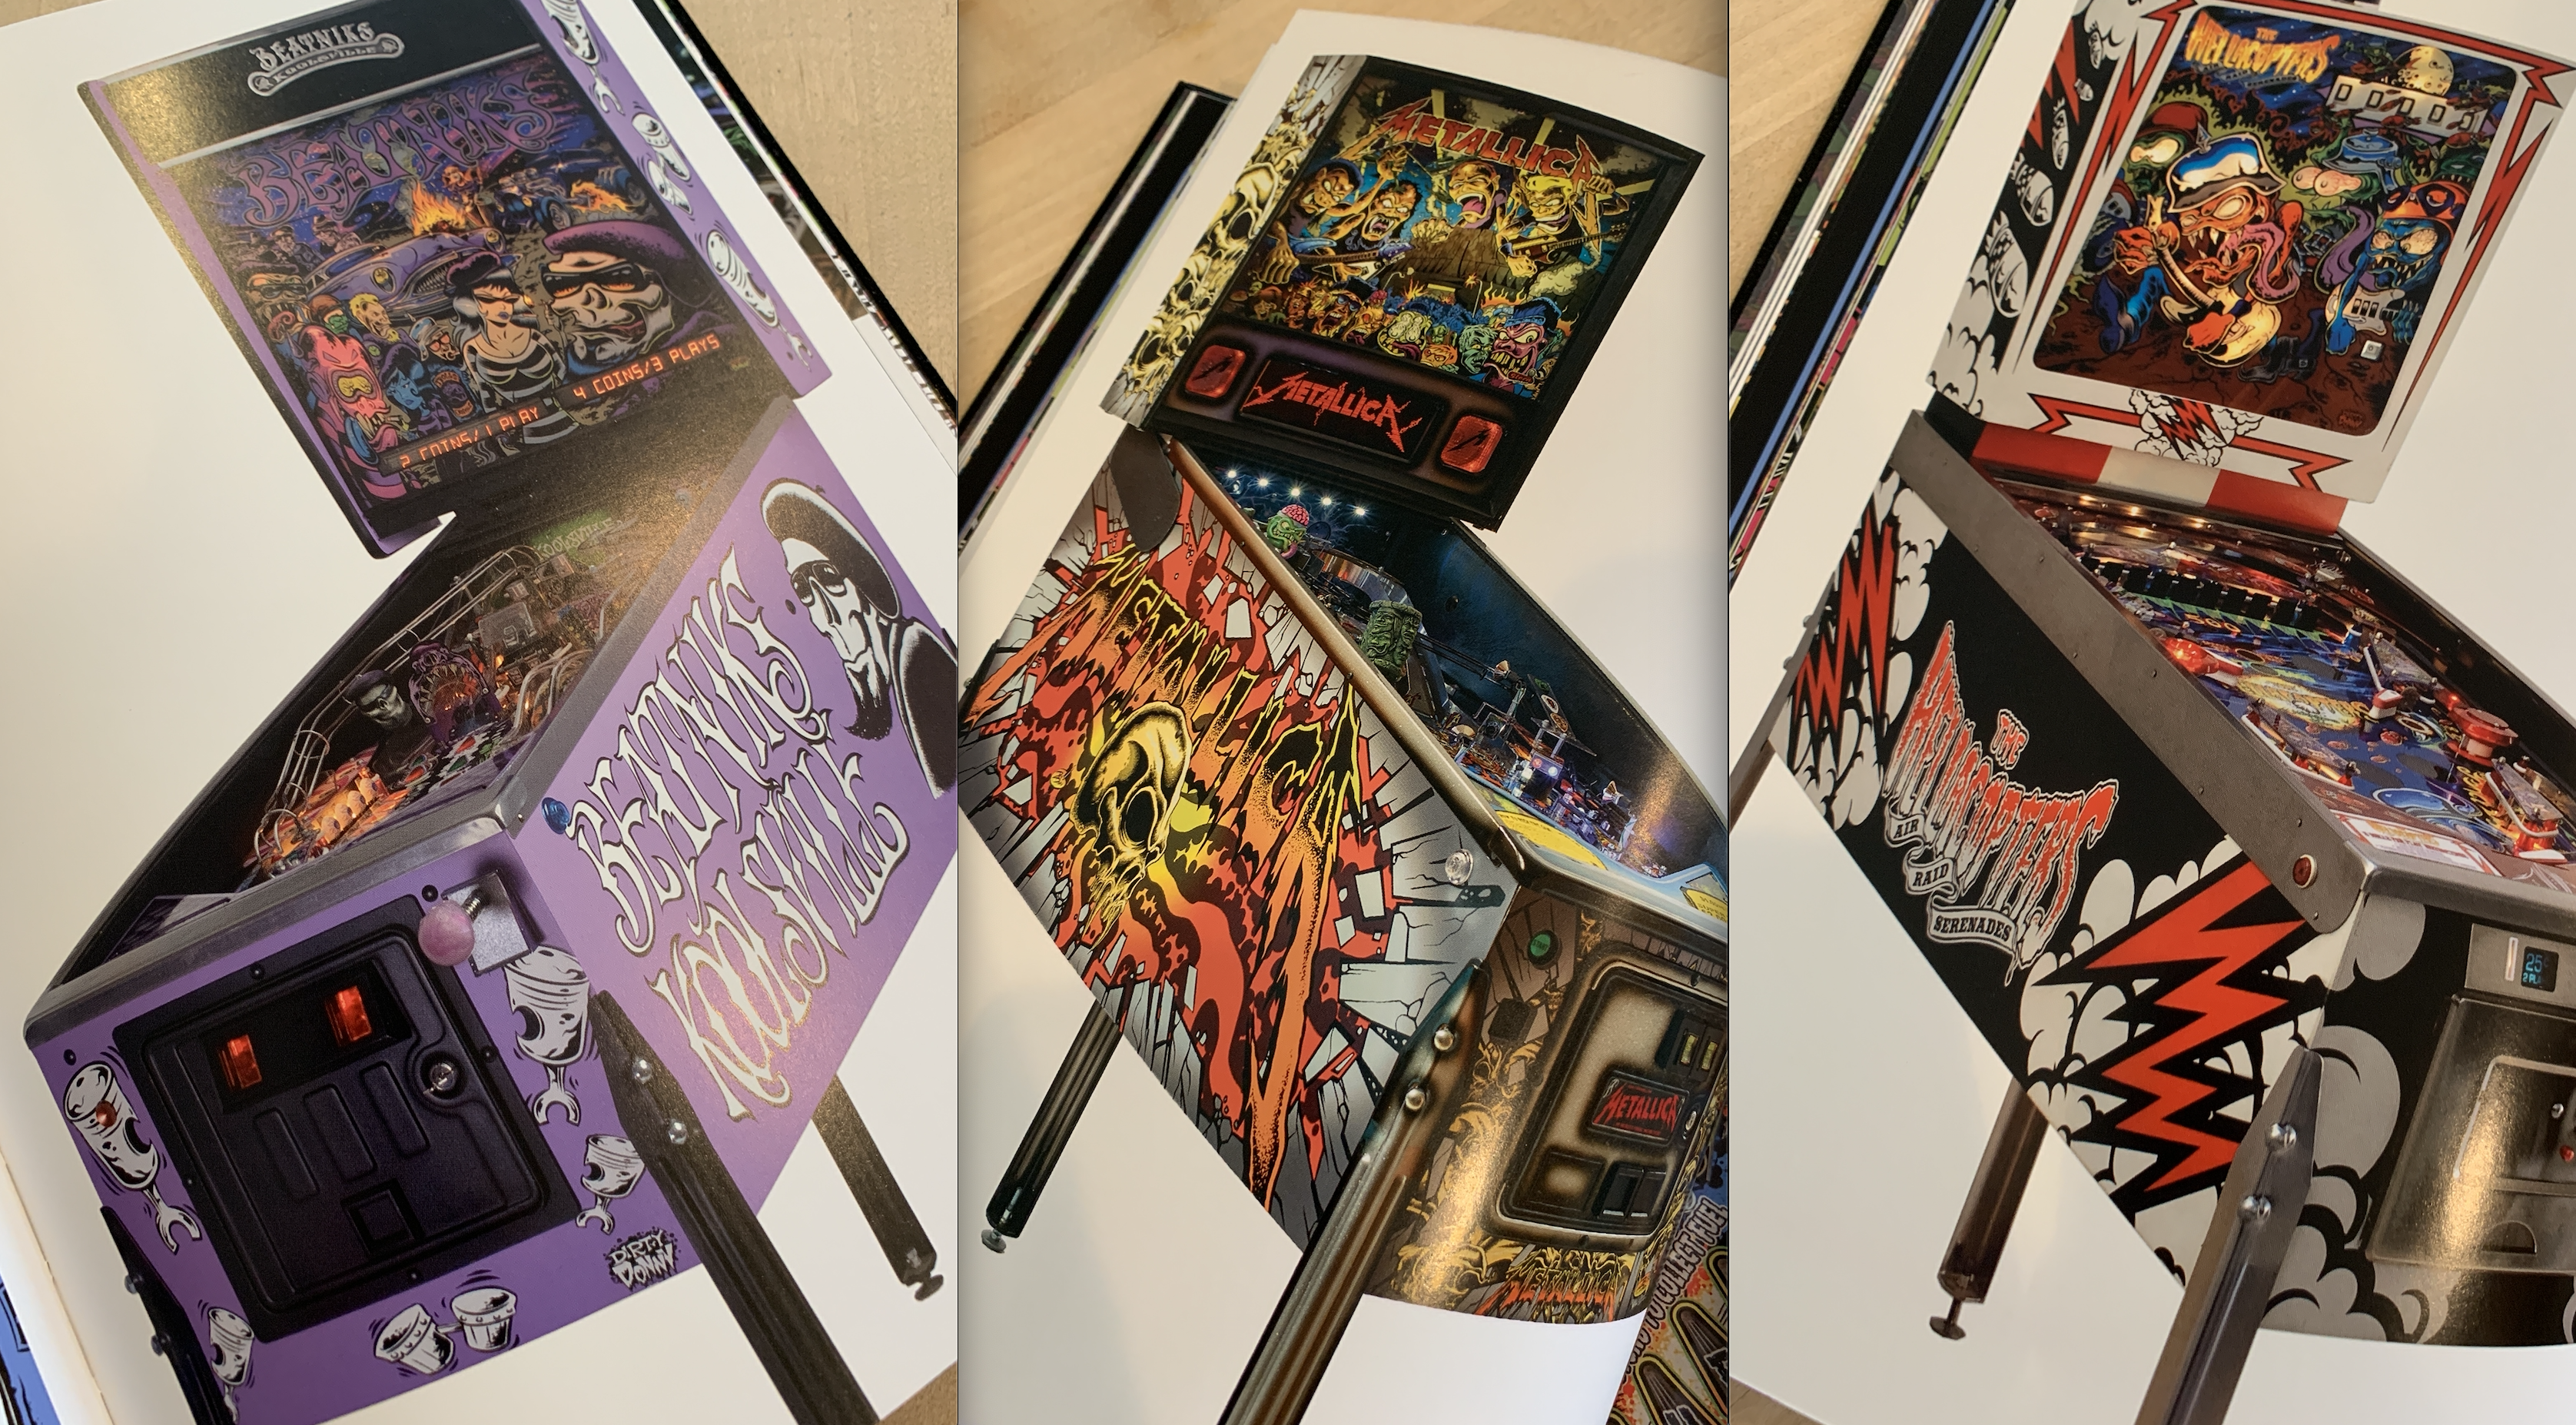 THIS WEEK IN PINBALL: May 20th, 2019 - This Week in Pinball